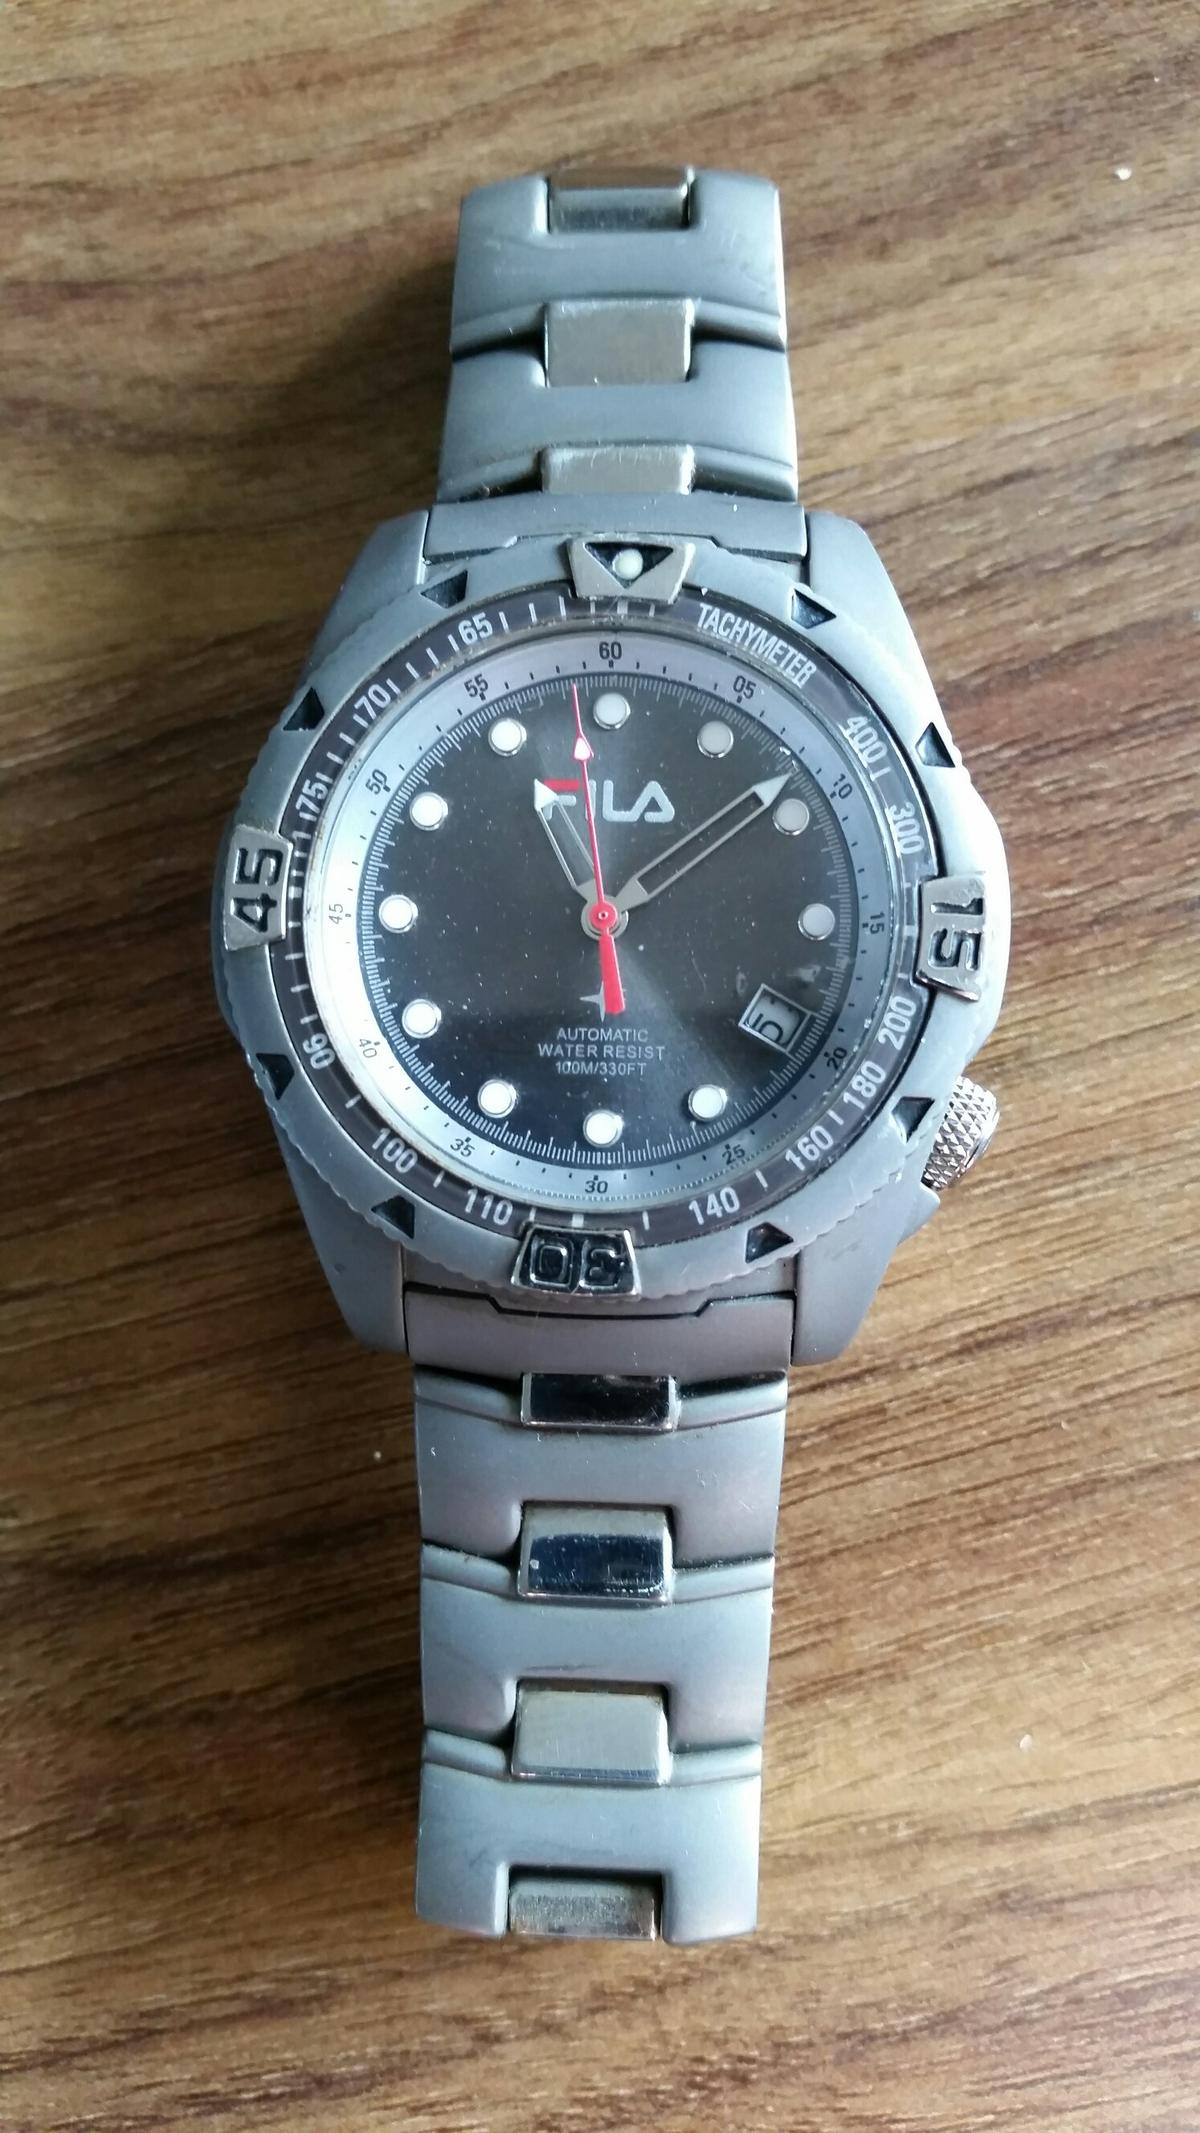 306d1039d6ac Fila skyrunner watch in FY3 Blackpool for £25.00 for sale - Shpock